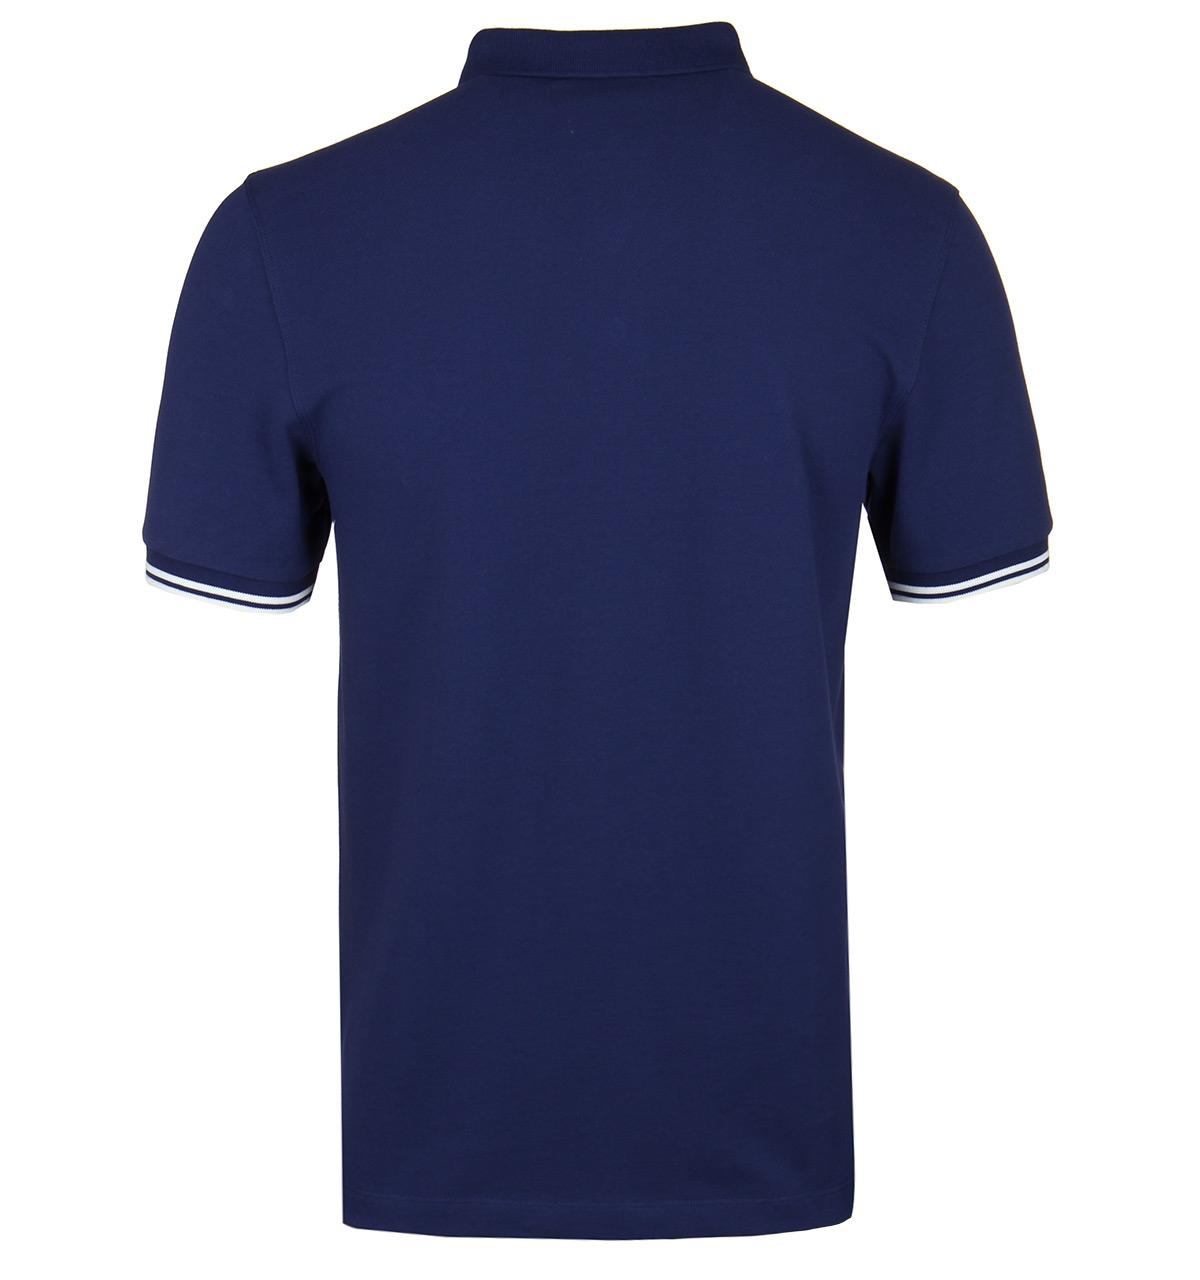 35afecddf0d Fred Perry - Blue Rich Navy Jacquard Short Sleeve Pique Polo Shirt for Men  - Lyst. View fullscreen